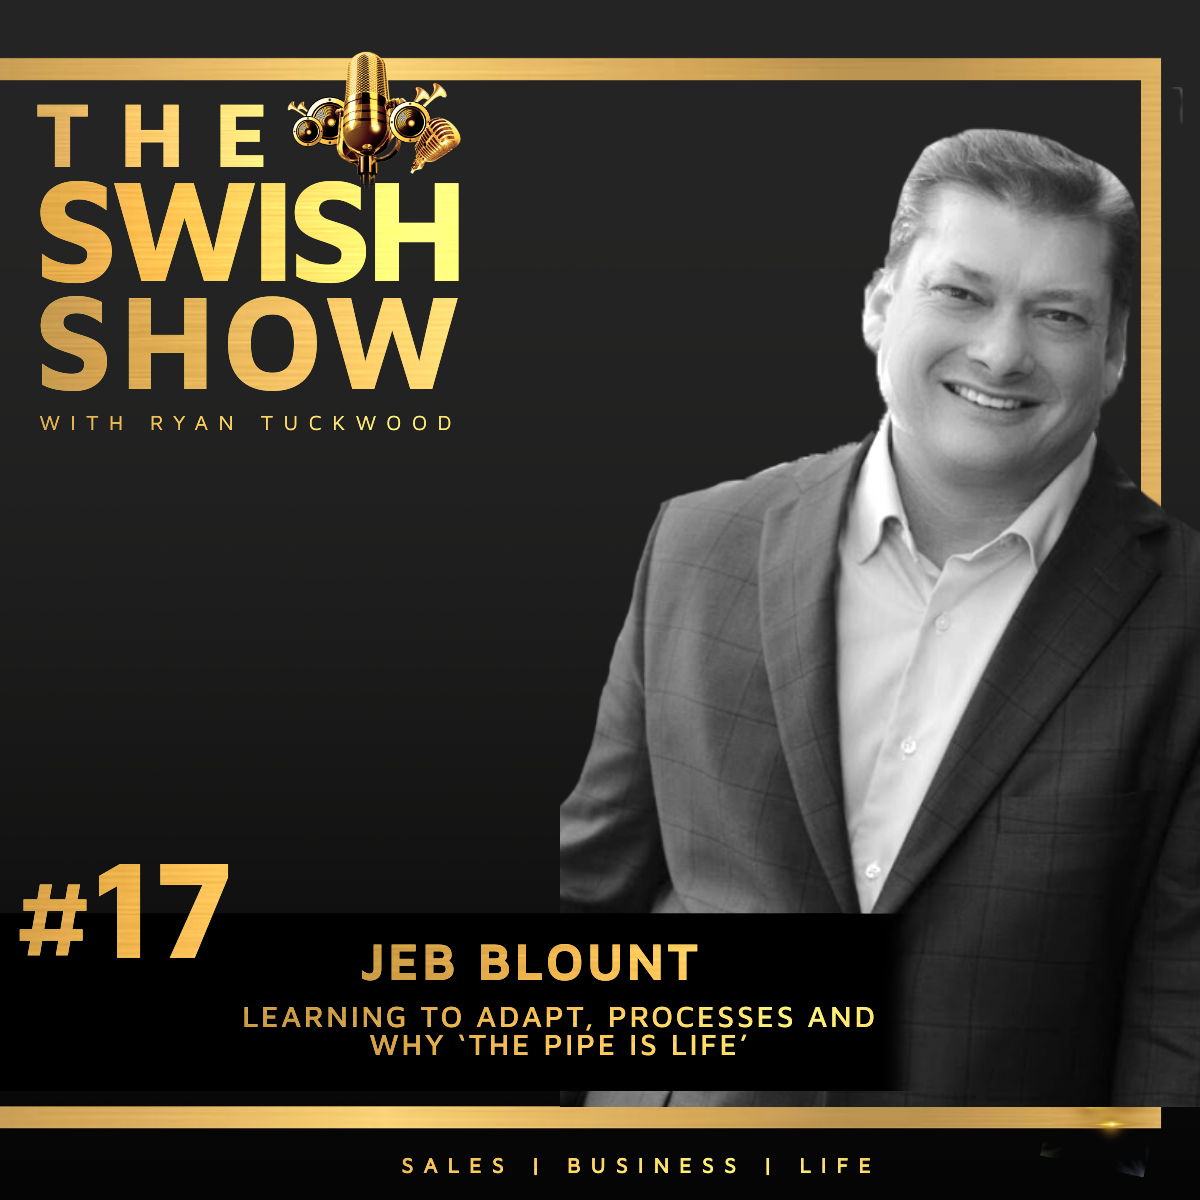 The Swish Show Jeb Blount